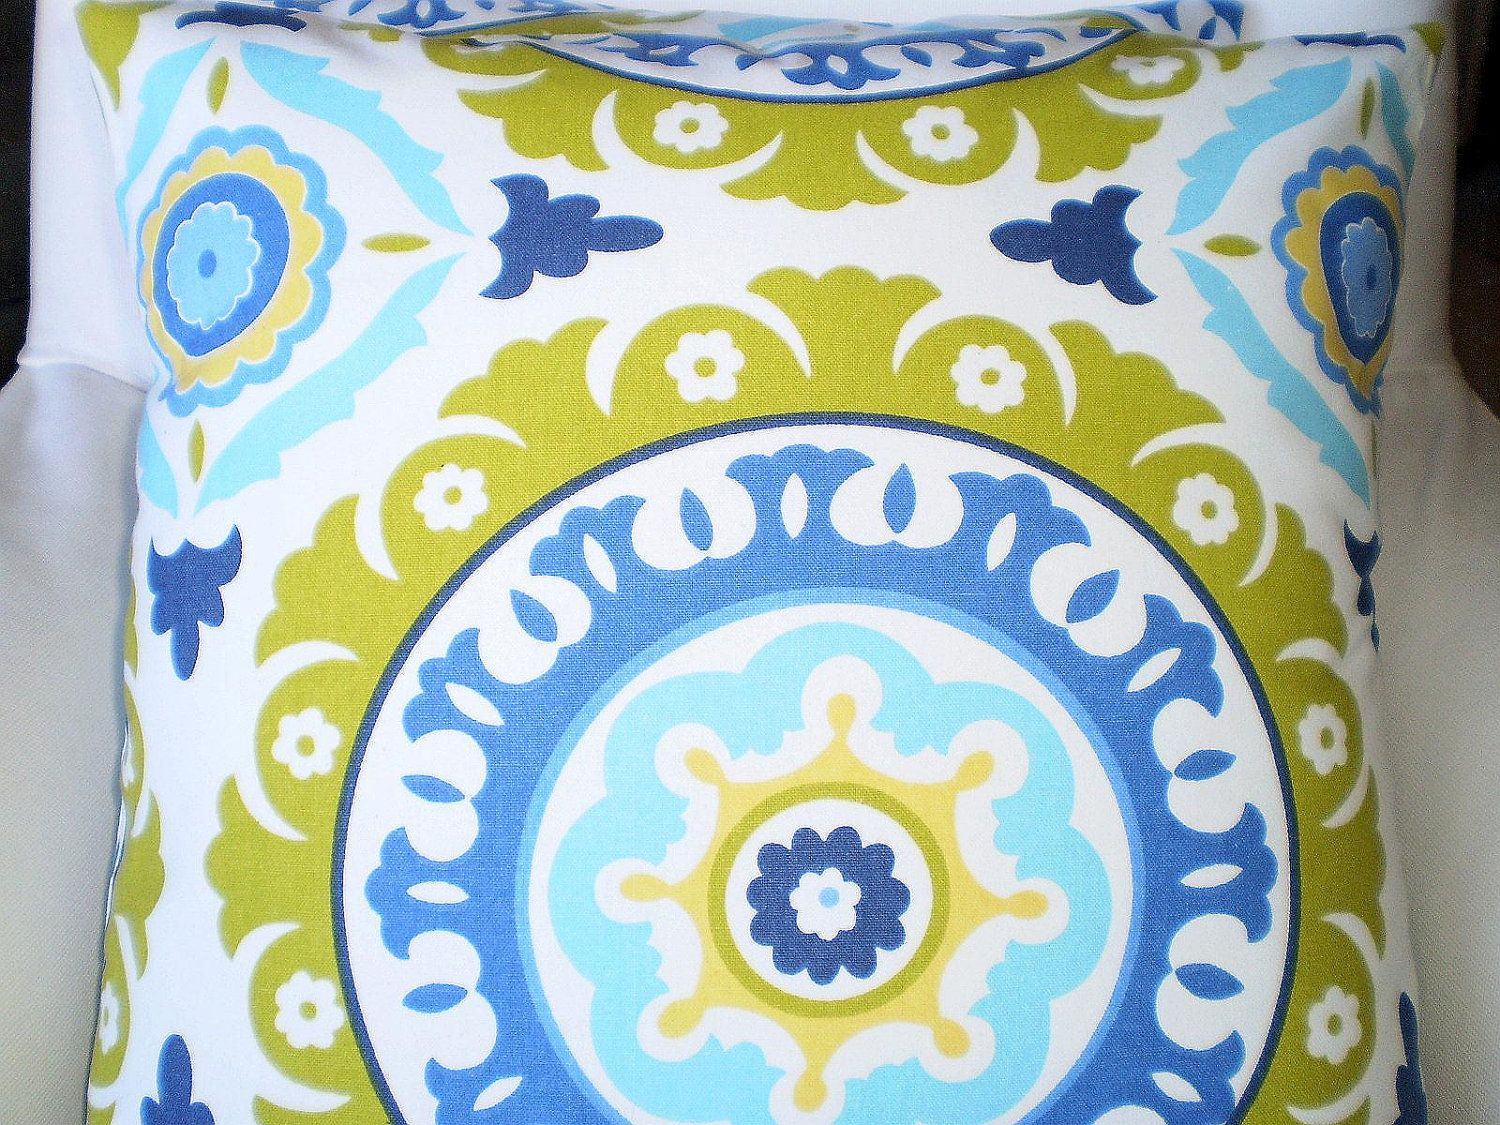 Periwinkle Blue Throw Pillow : Throw Pillows Decorative Pillows Cushion Covers Lime Green Aqua Periwinkle Blue Yellow Waverly ...